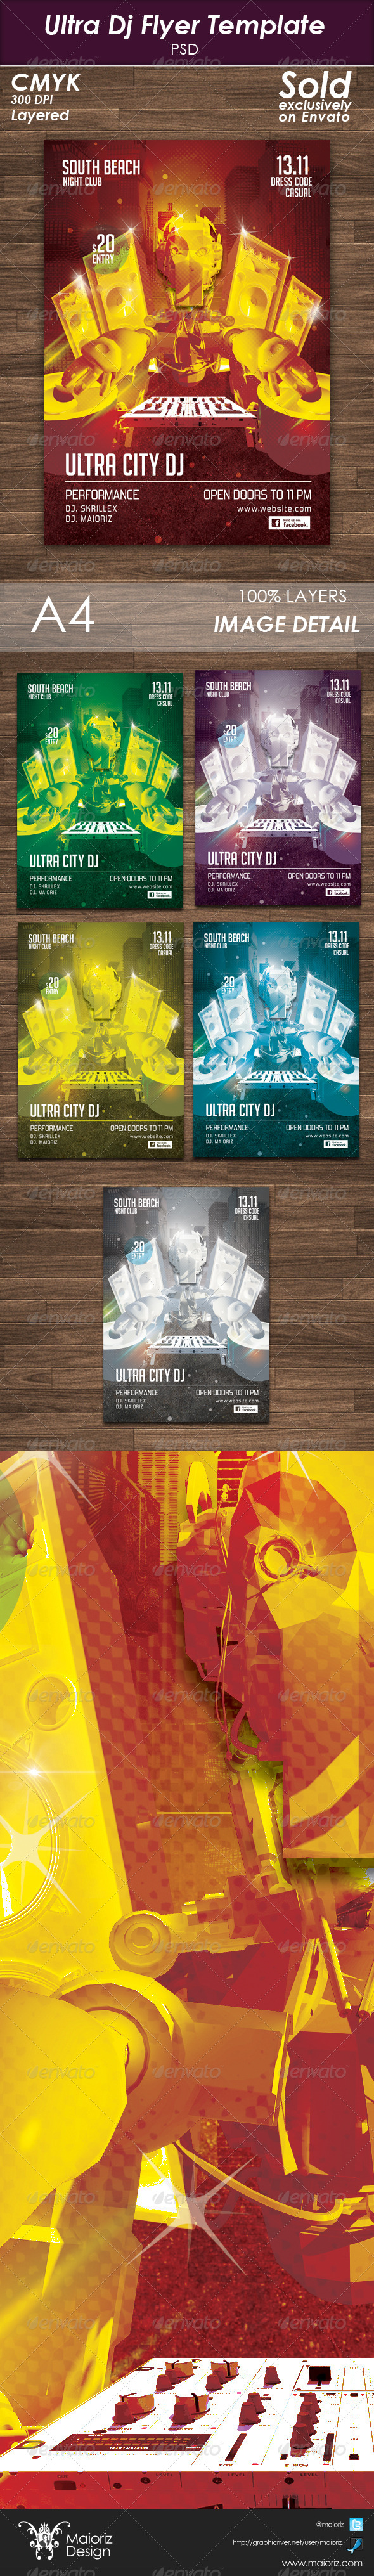 Ultra Dj Flyer Template - Clubs & Parties Events